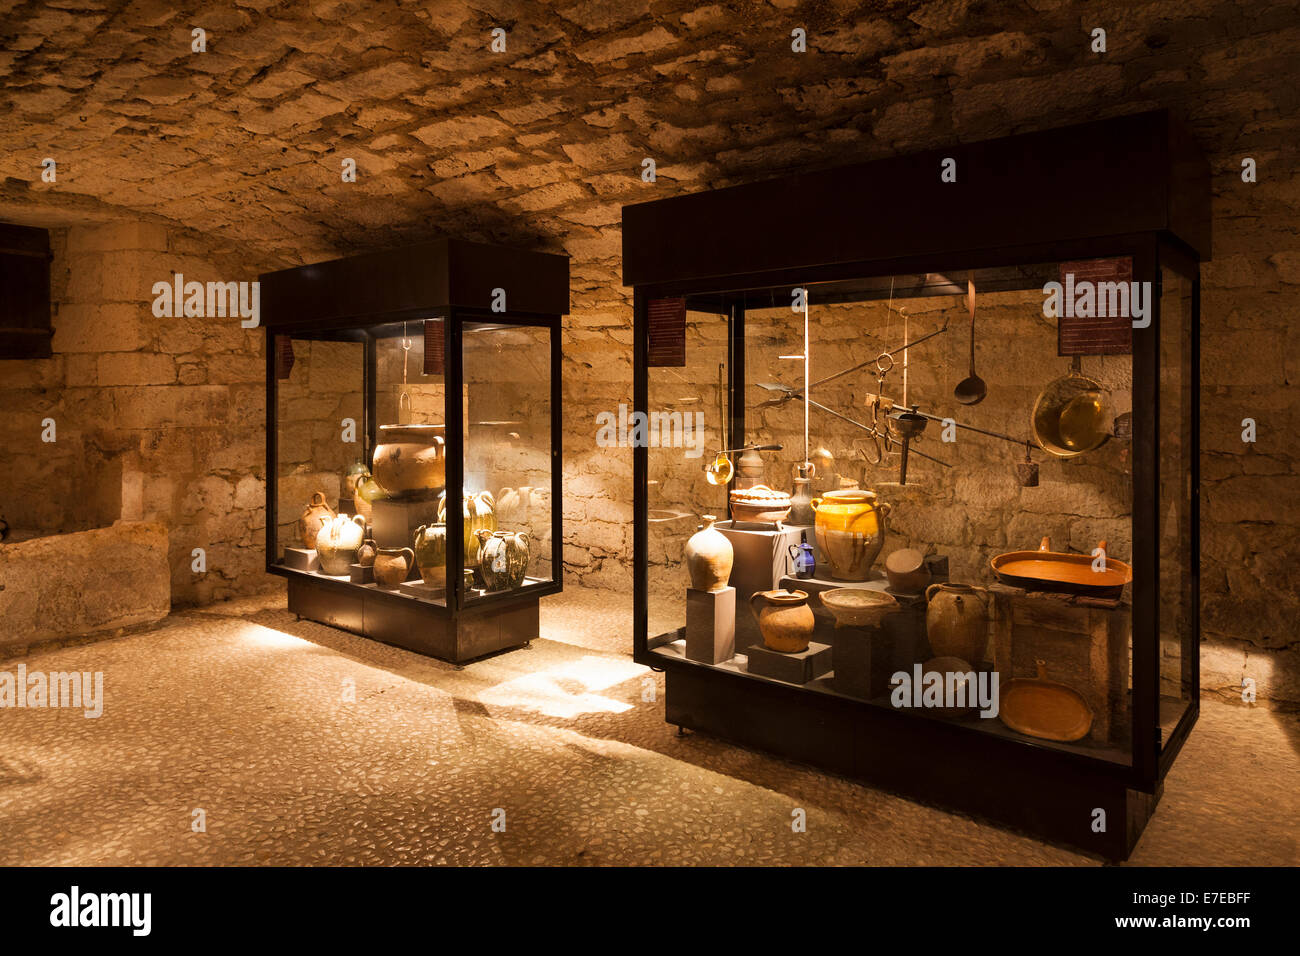 The kitchens in the Chateau de Monbazillac France - Stock Image